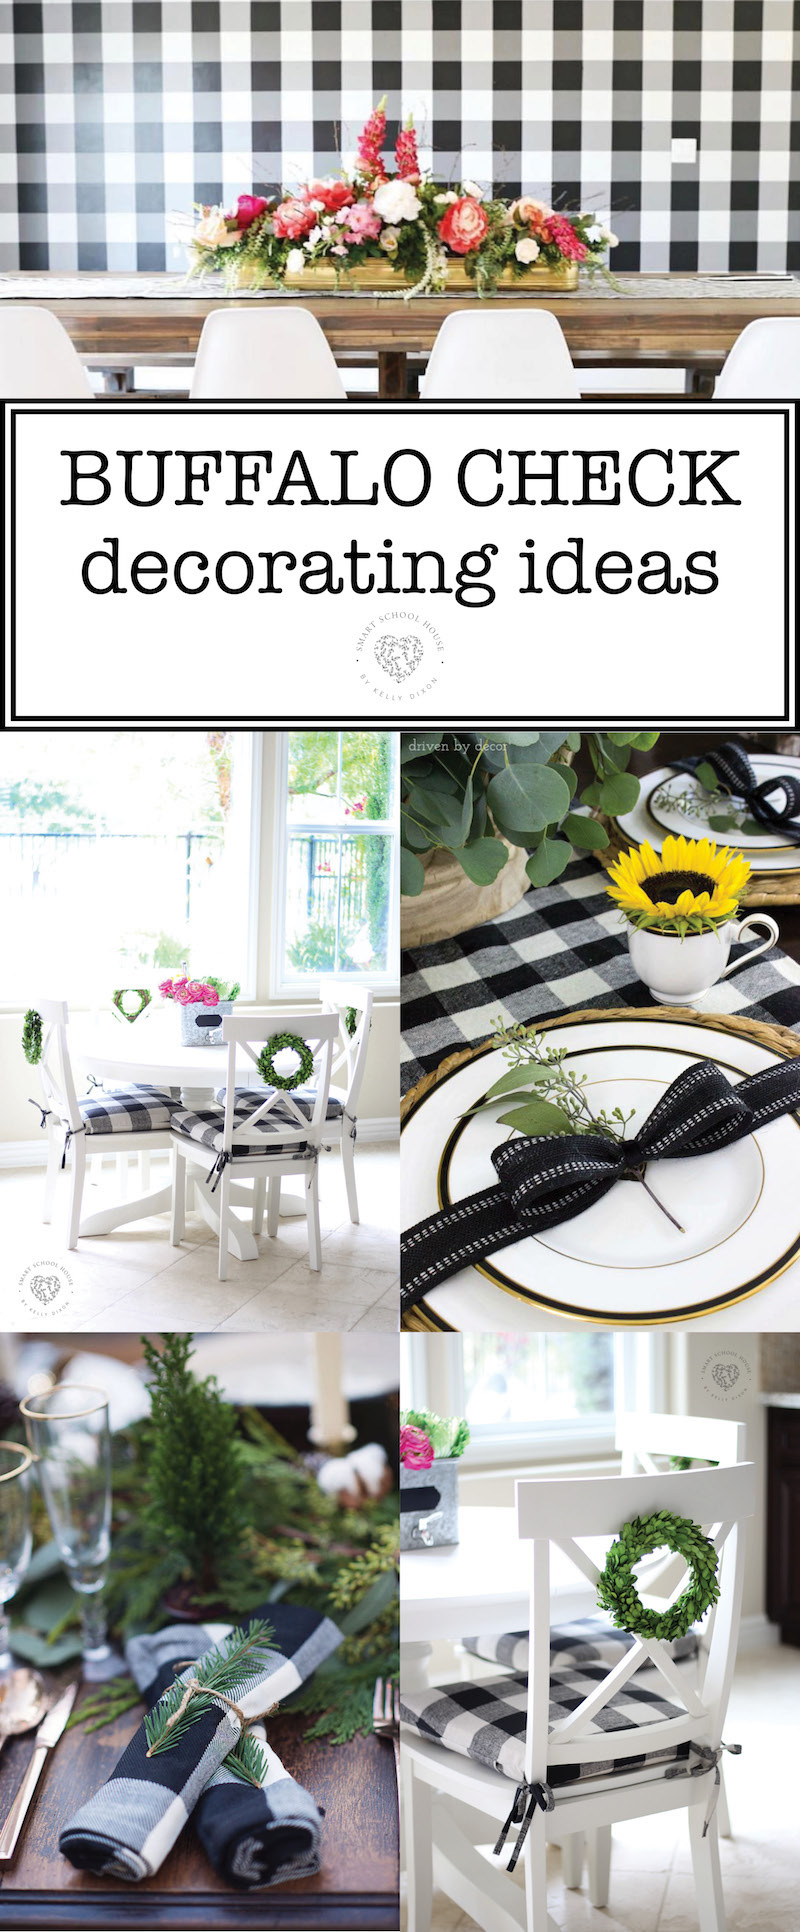 Buffalo check decor ideas